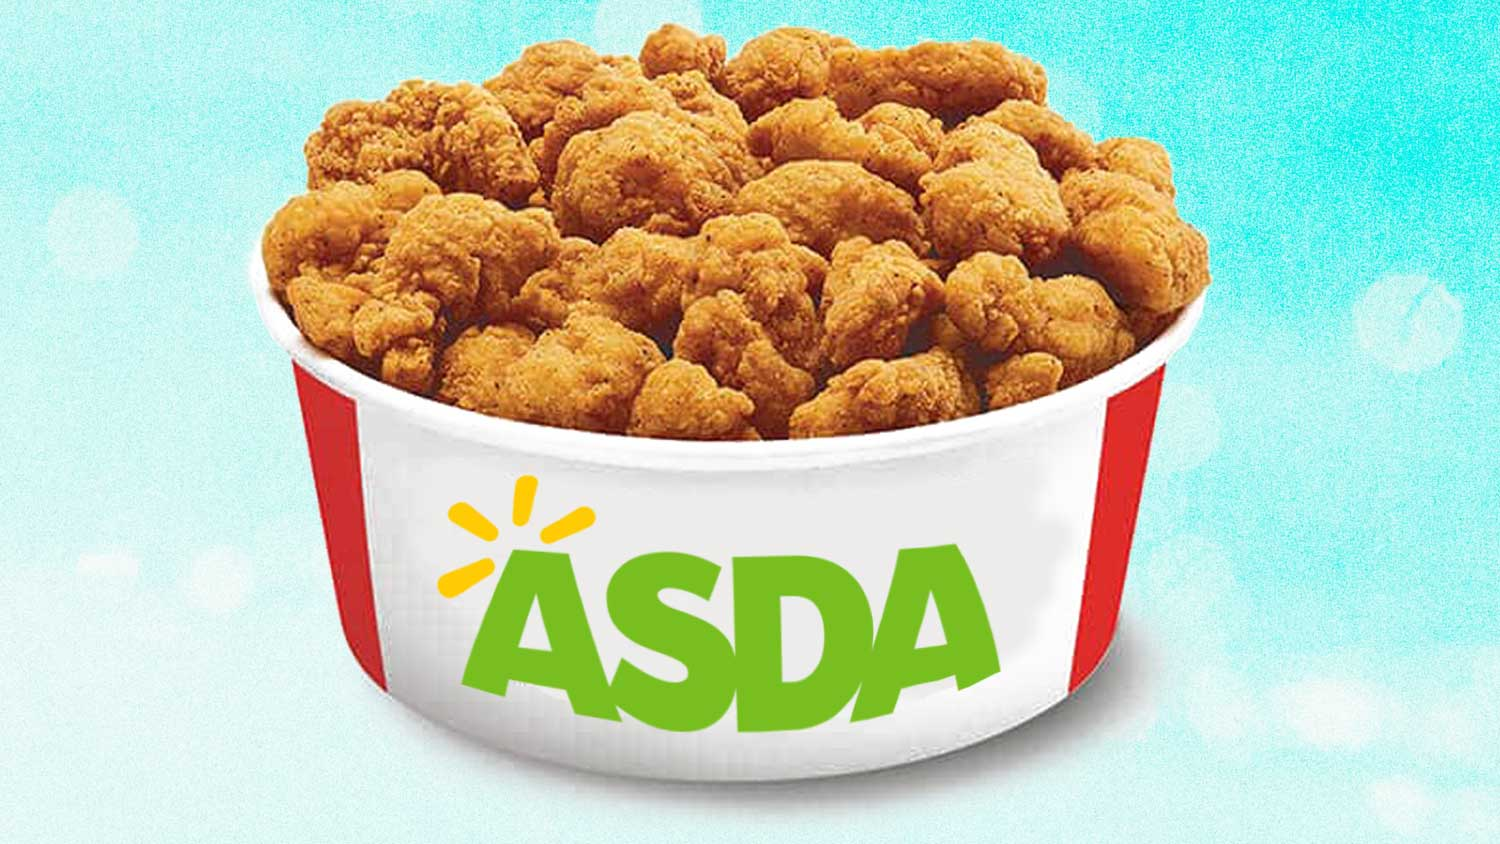 Asda Now Has Vegan KFC Style Popcorn Chicken